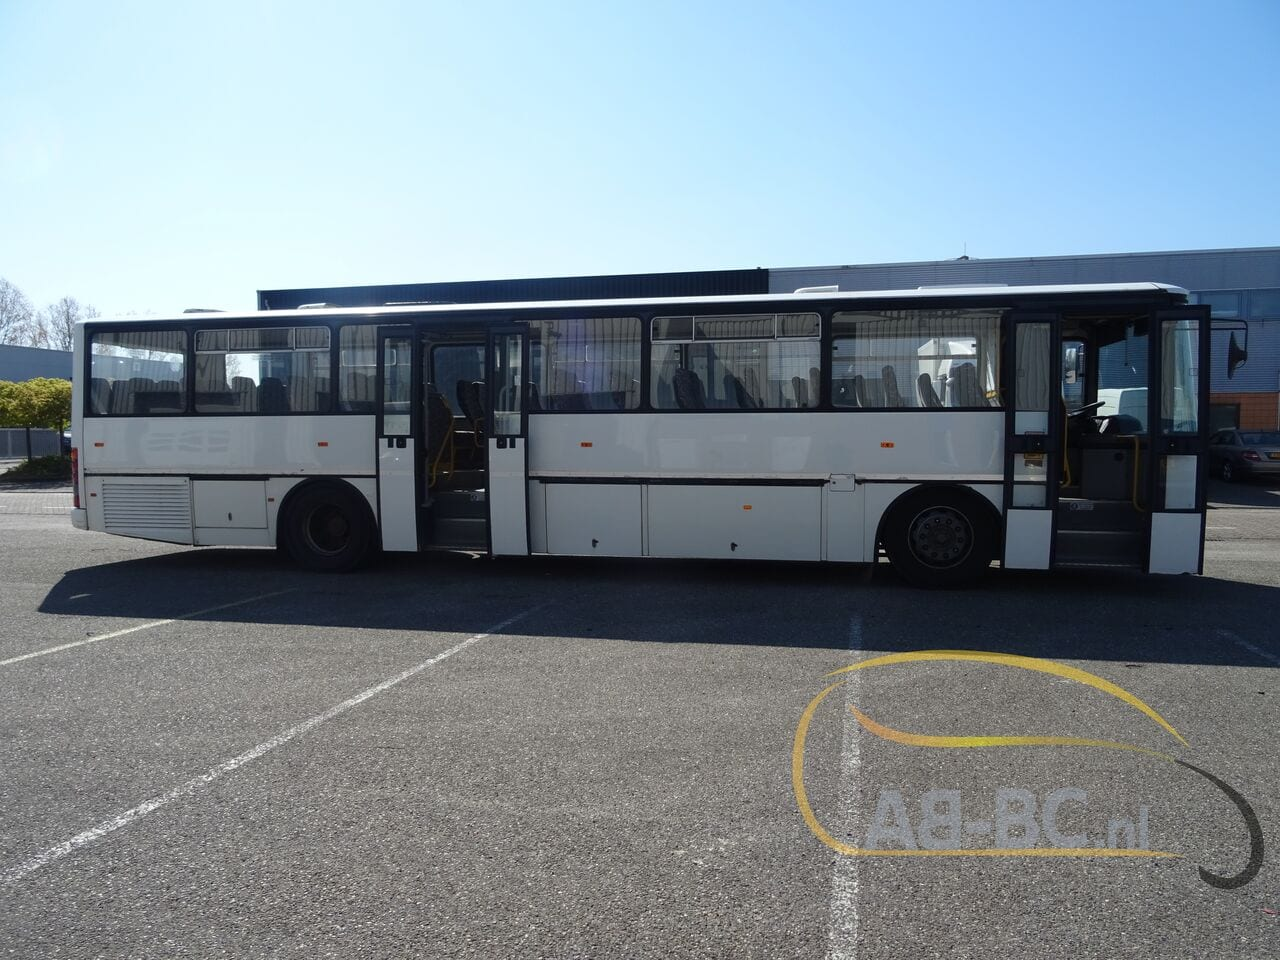 interurban-busIVECO-Irisbus-Recreo-59-Seats---1619430620083184565_big_c2c8f20884e5e84a7f4cff494379dd7e--21042612454255740900